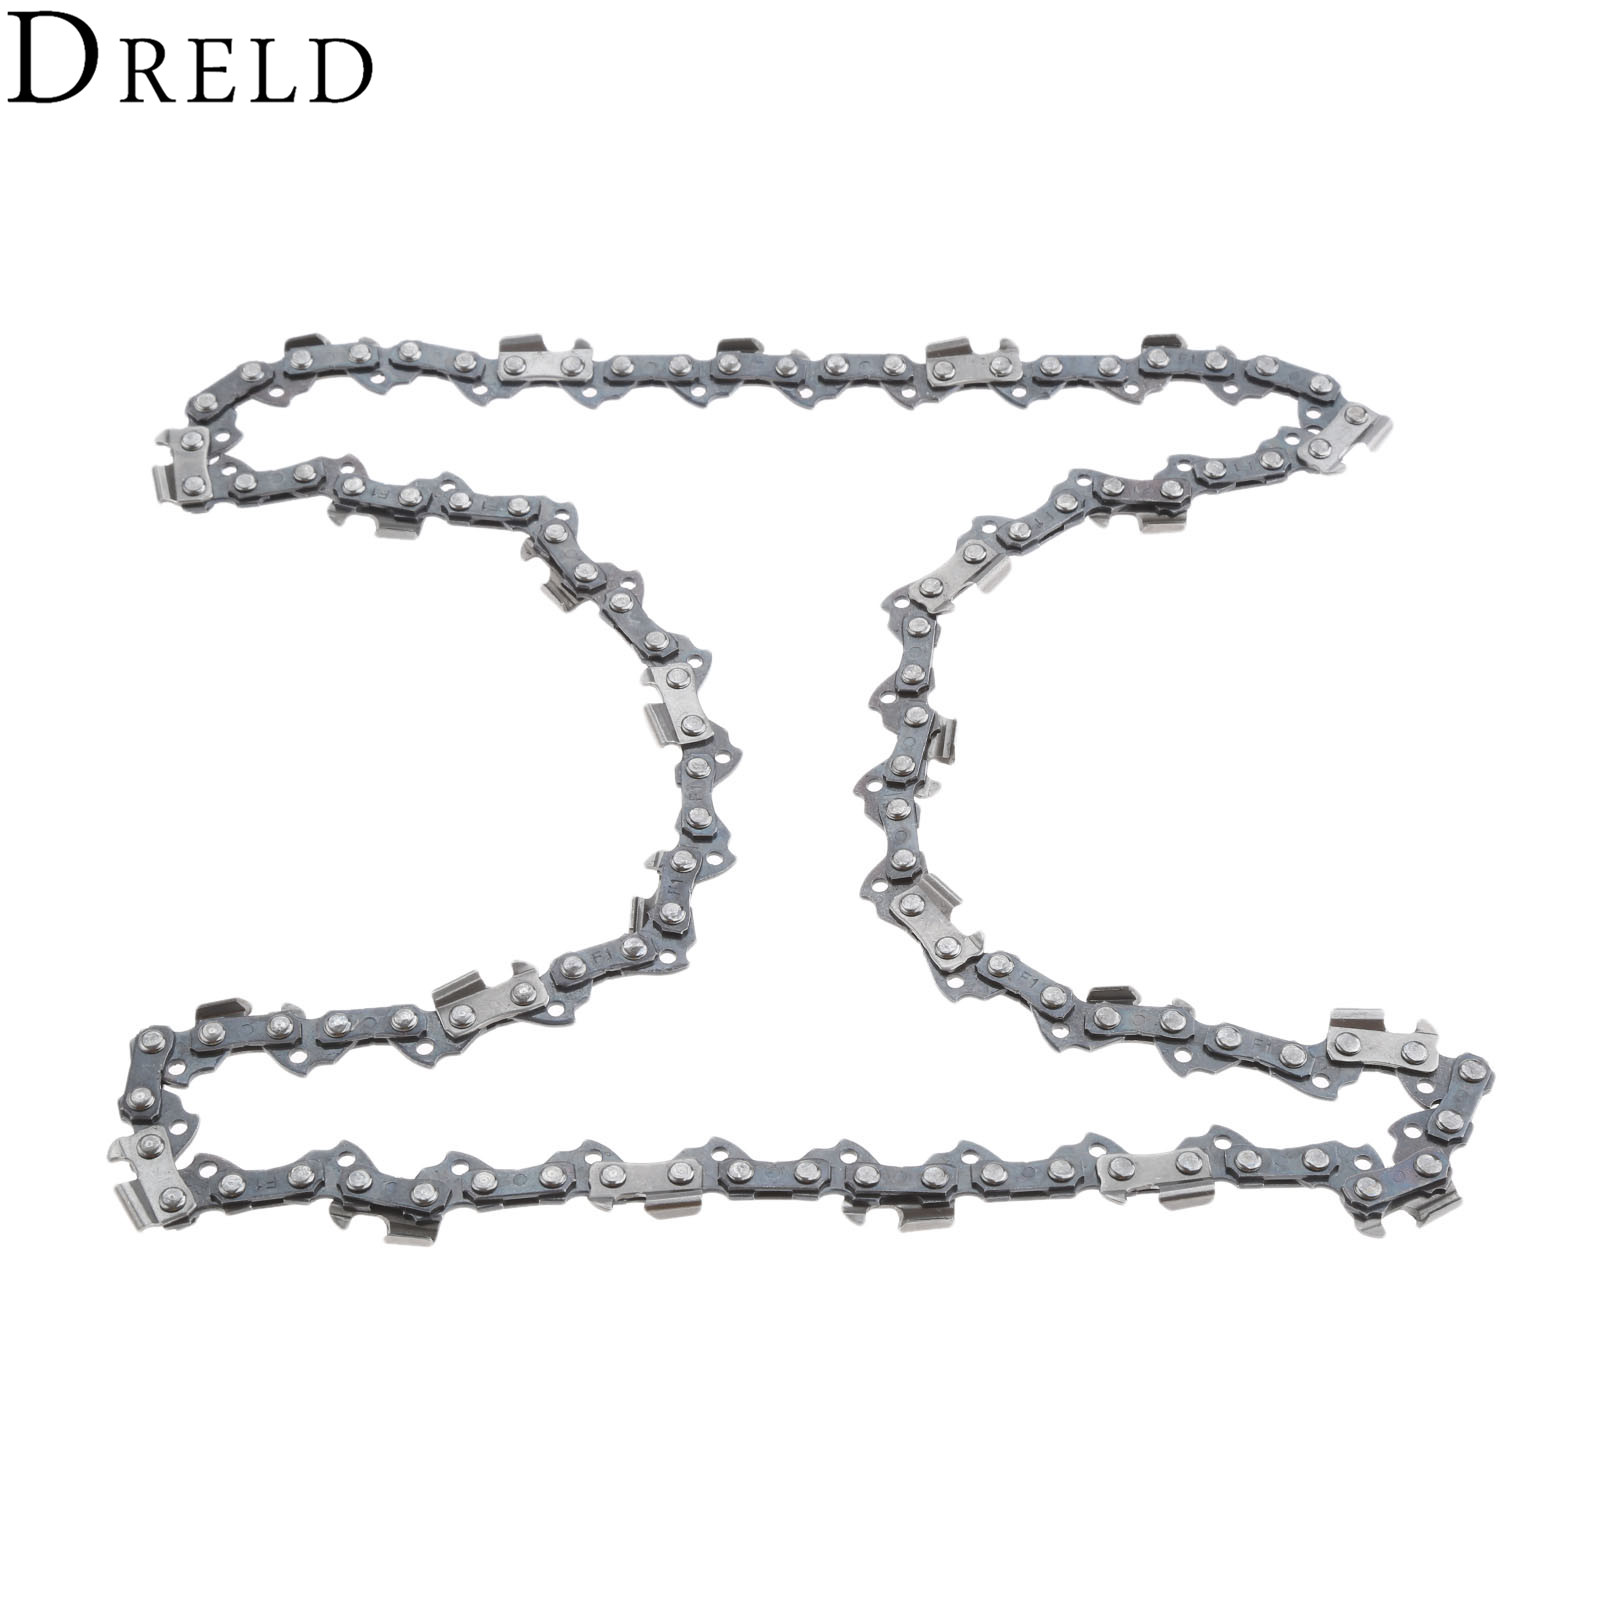 DRELD Metal Chainsaw Chain Blade 3/8 Pitch Sharp Blade Quickly Cut Wood For Stihl 009 010 017 019 023 MS170 MS180 16 size chainsaw chains 3 8 063 1 6mm 60drive link quickly cut wood for stihl 039